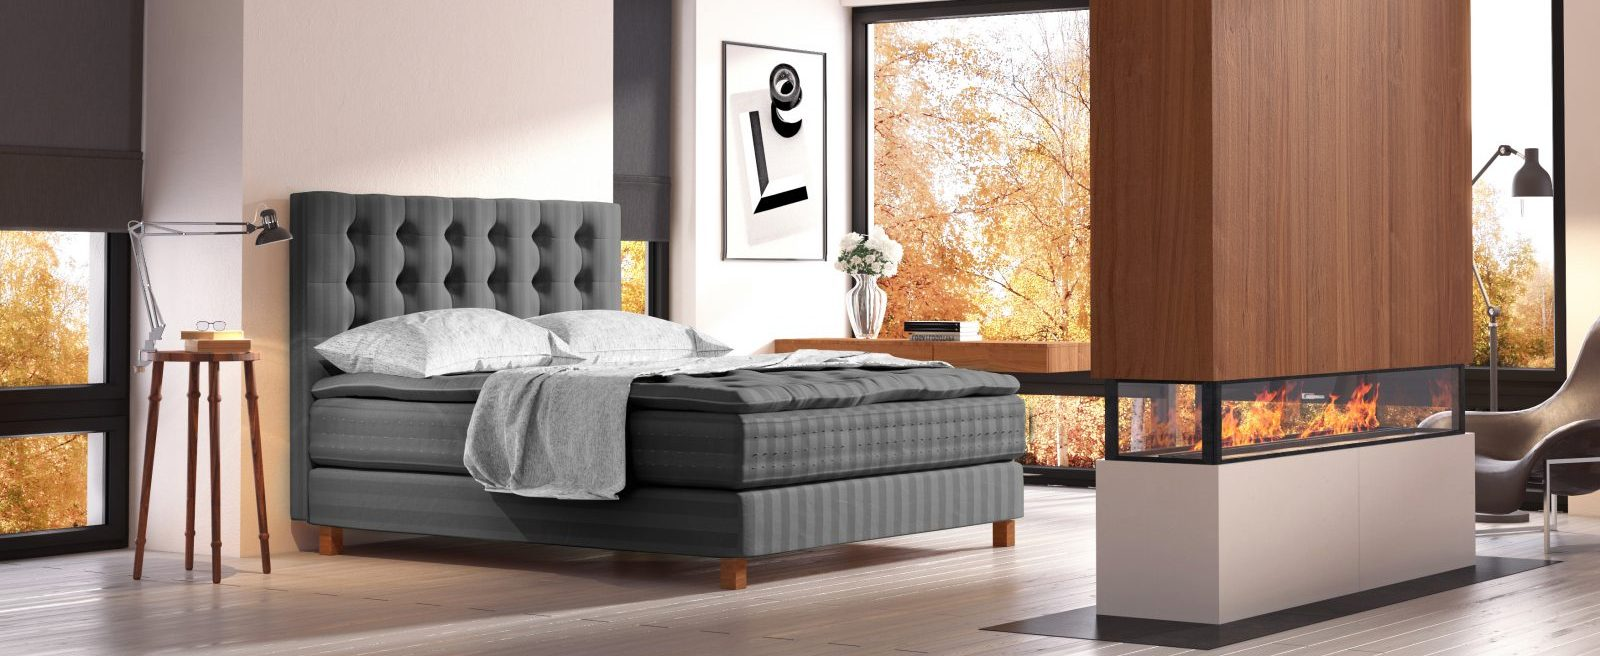 pauly-beds-continental-luxury-mattress-grace-small